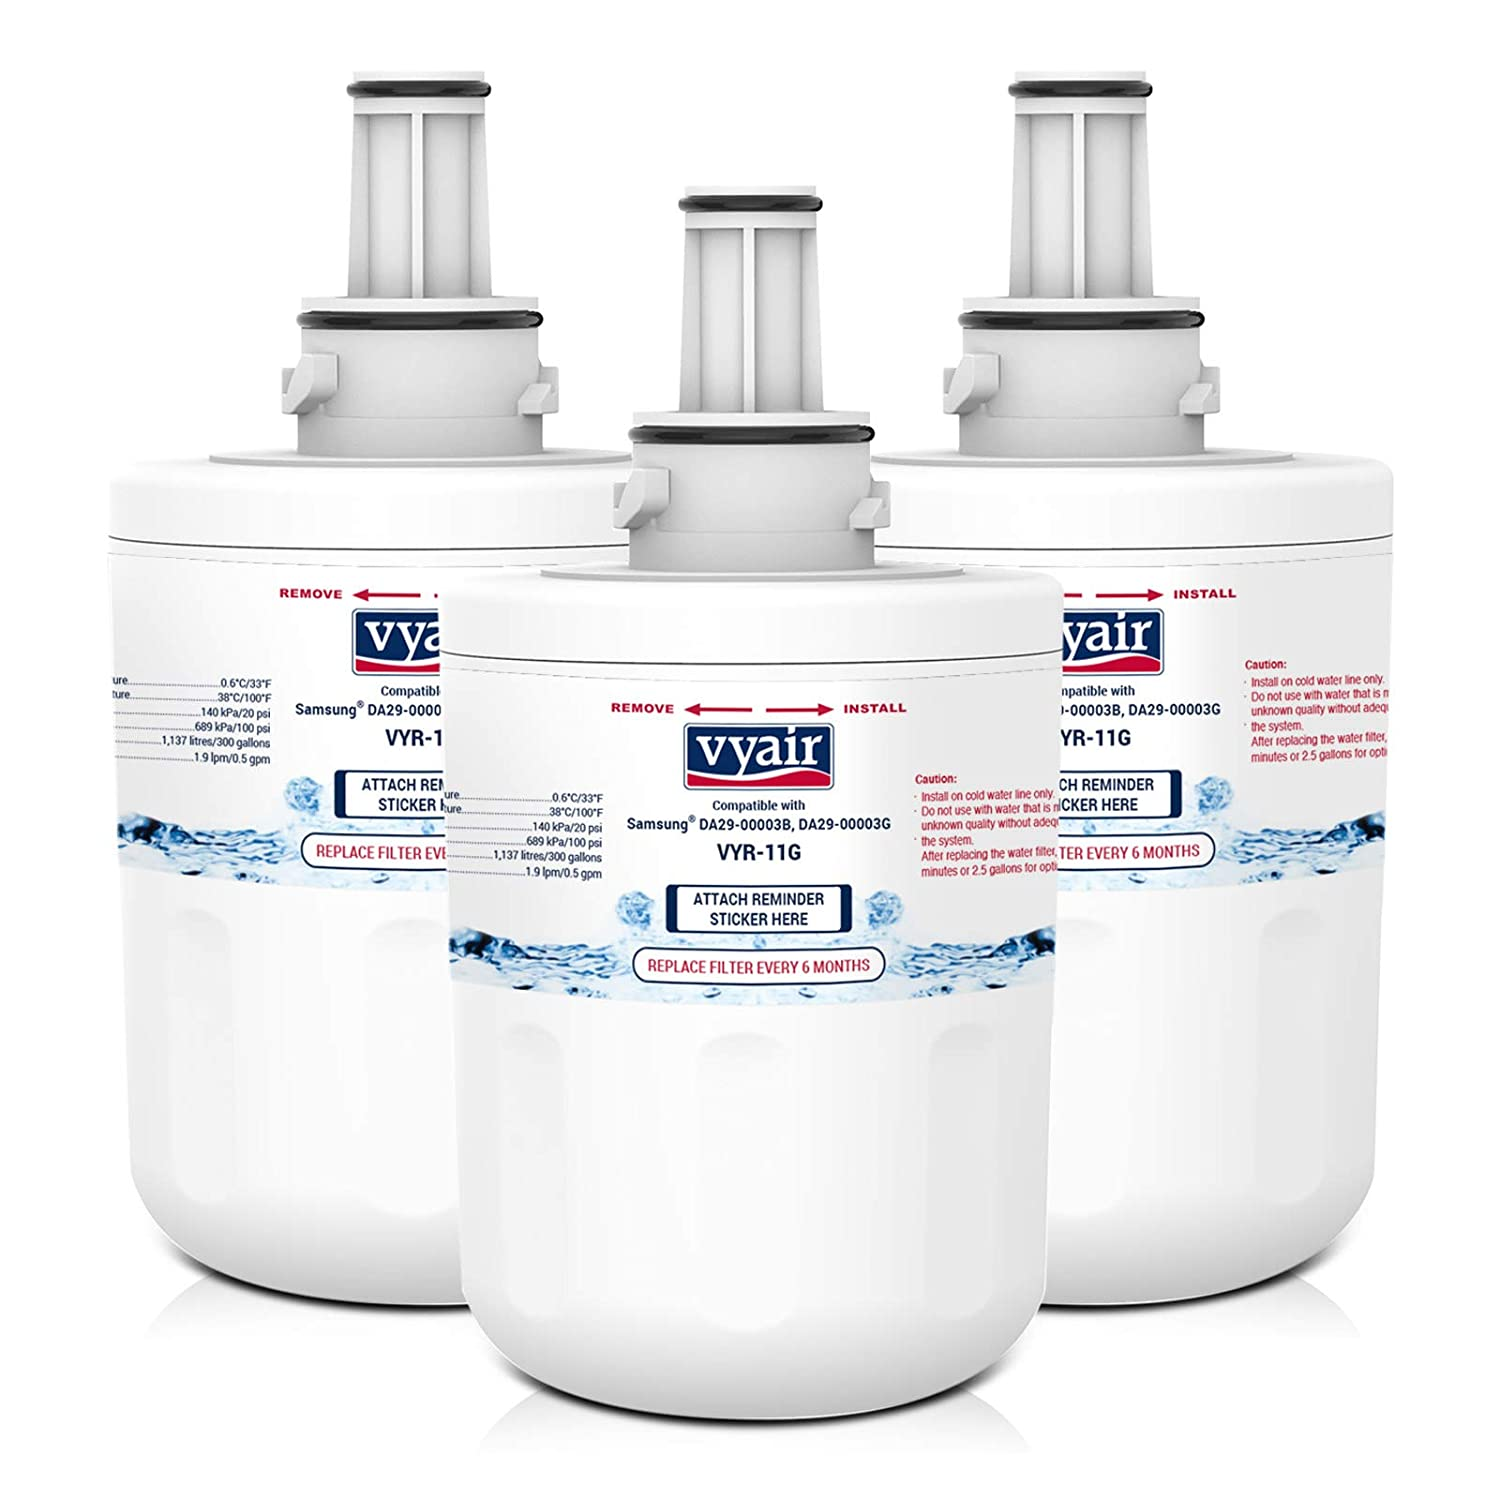 3 x VYAIR VYR-11G Ice & Water Refrigerator Filters to fit Samsung Aqua Pure PLUS DA29-00003G, HAFCU1/XAA, HAFIN1/EXP, DA97-06317A